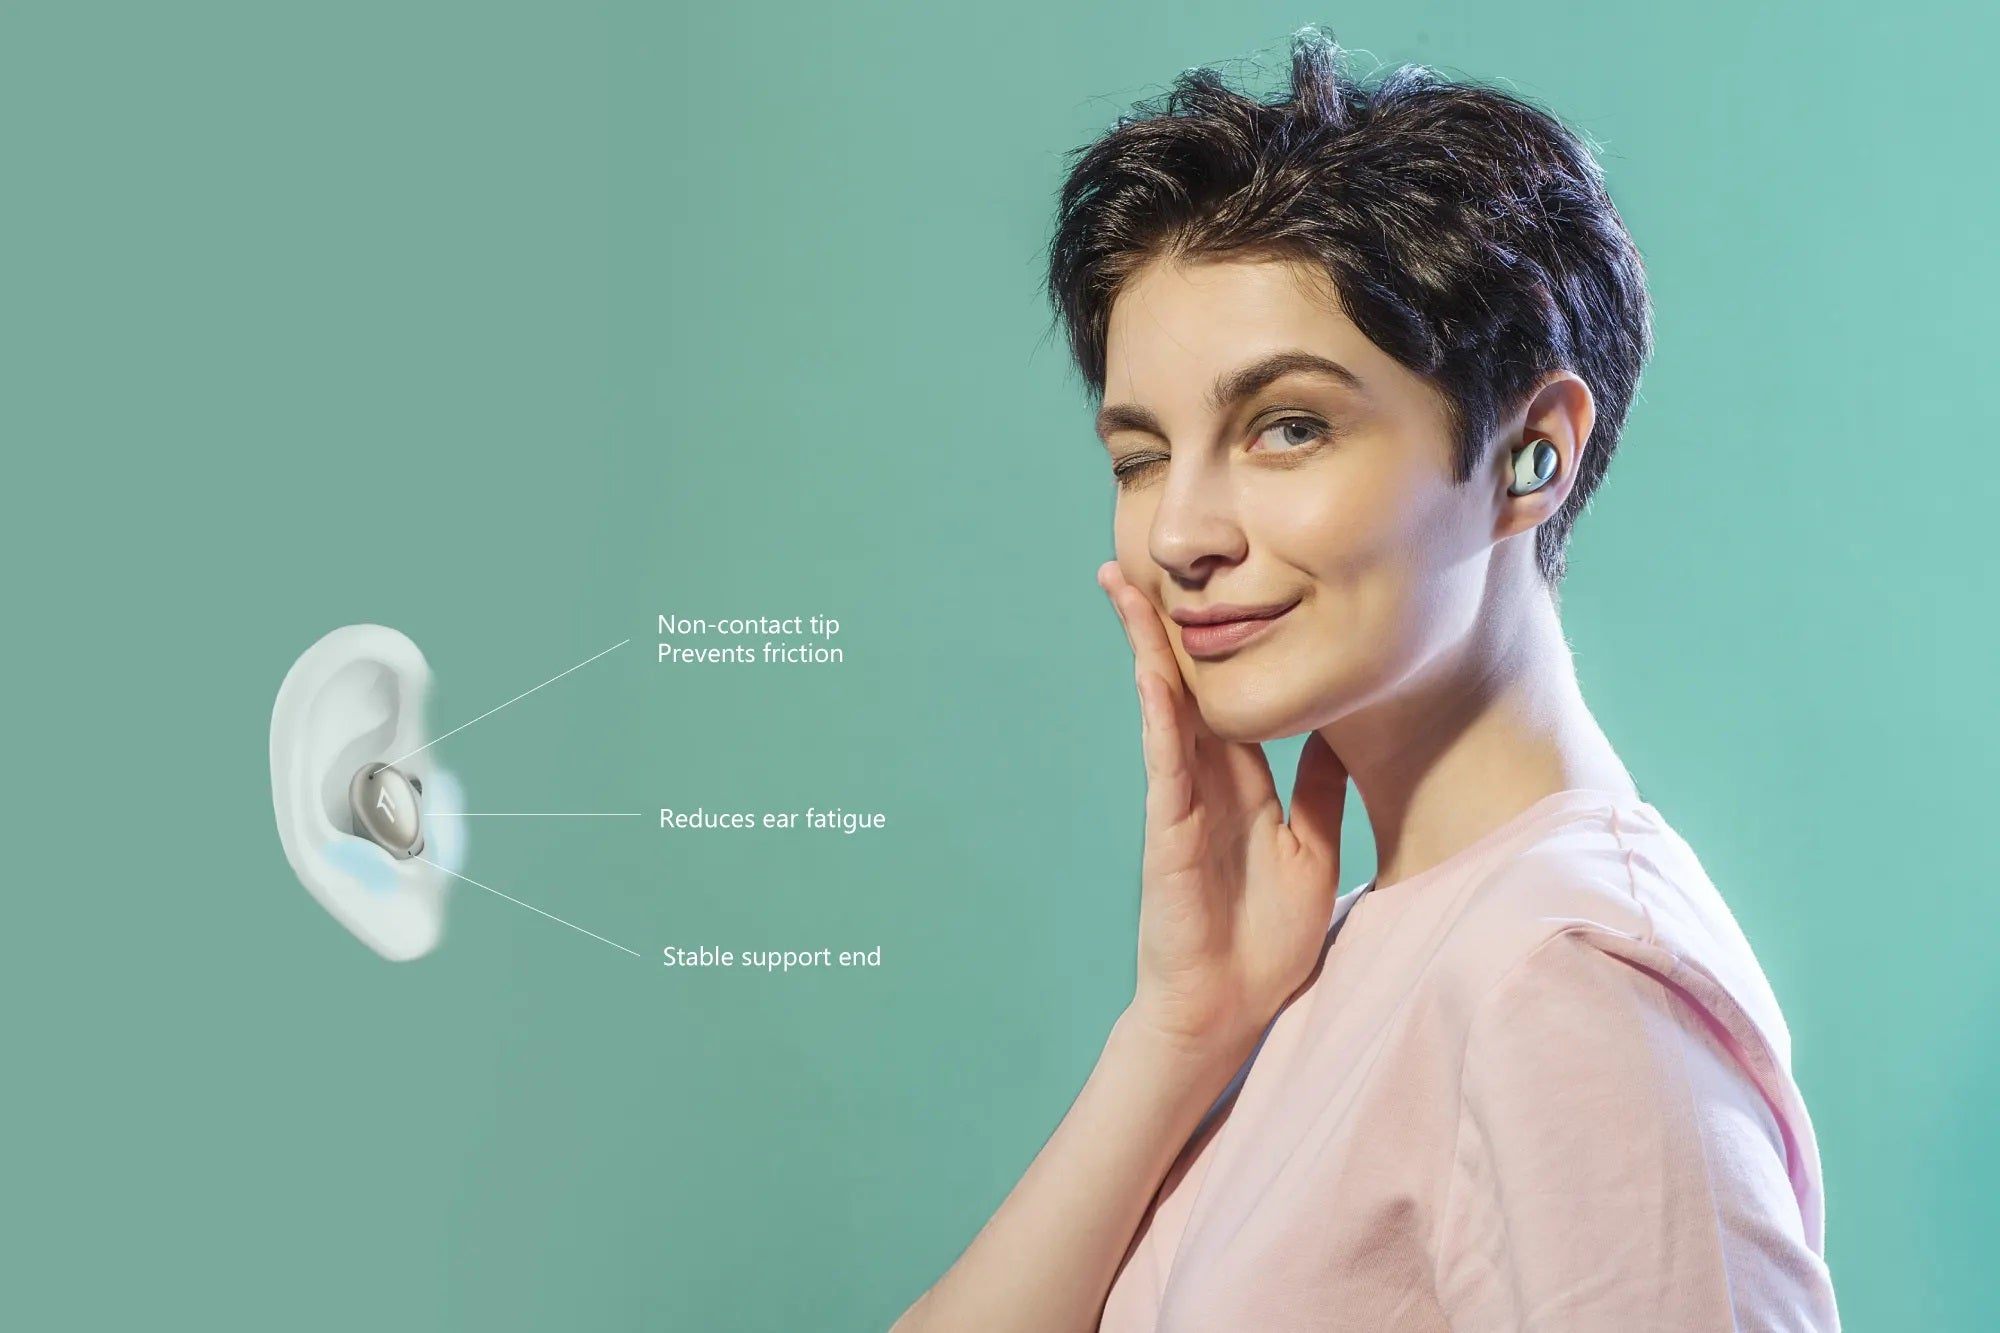 Long-lasting comfort from a streamlined design with multiple ear tip sizes provided.